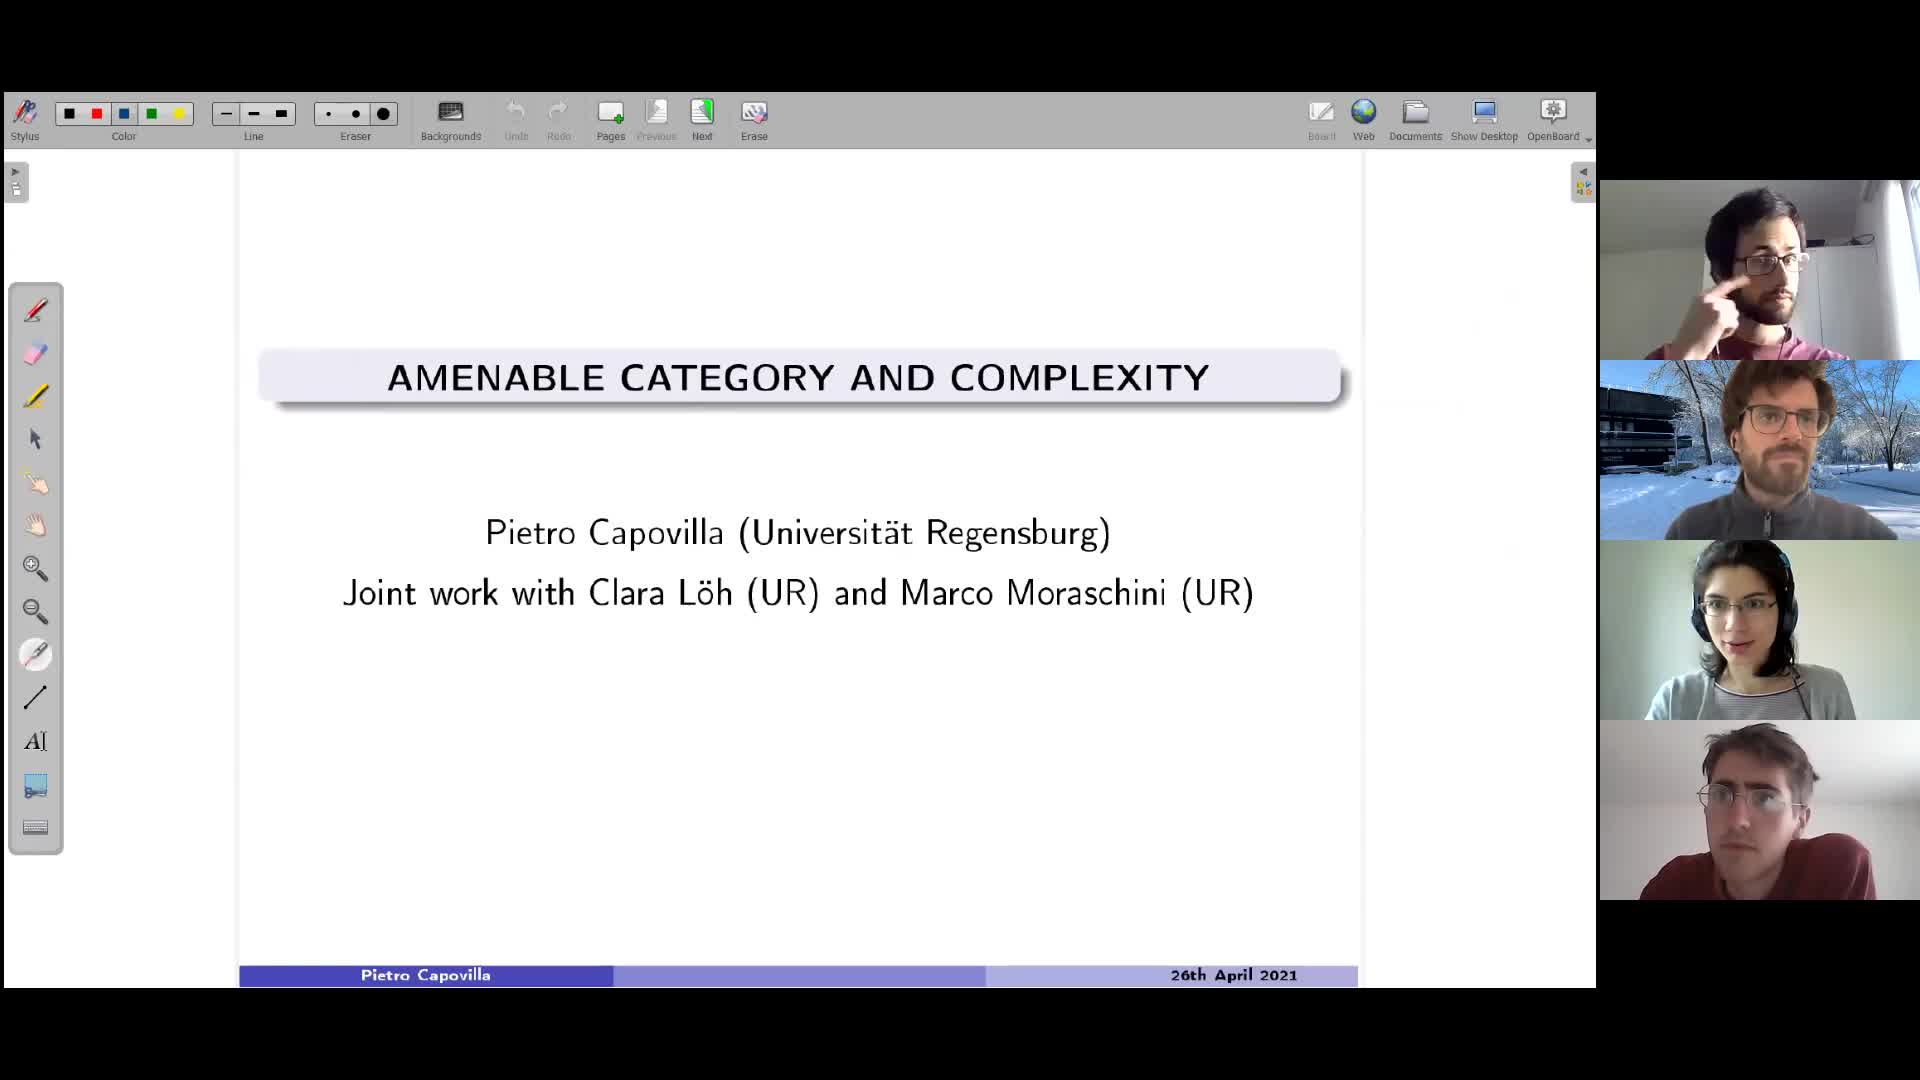 Amenable category and complexity